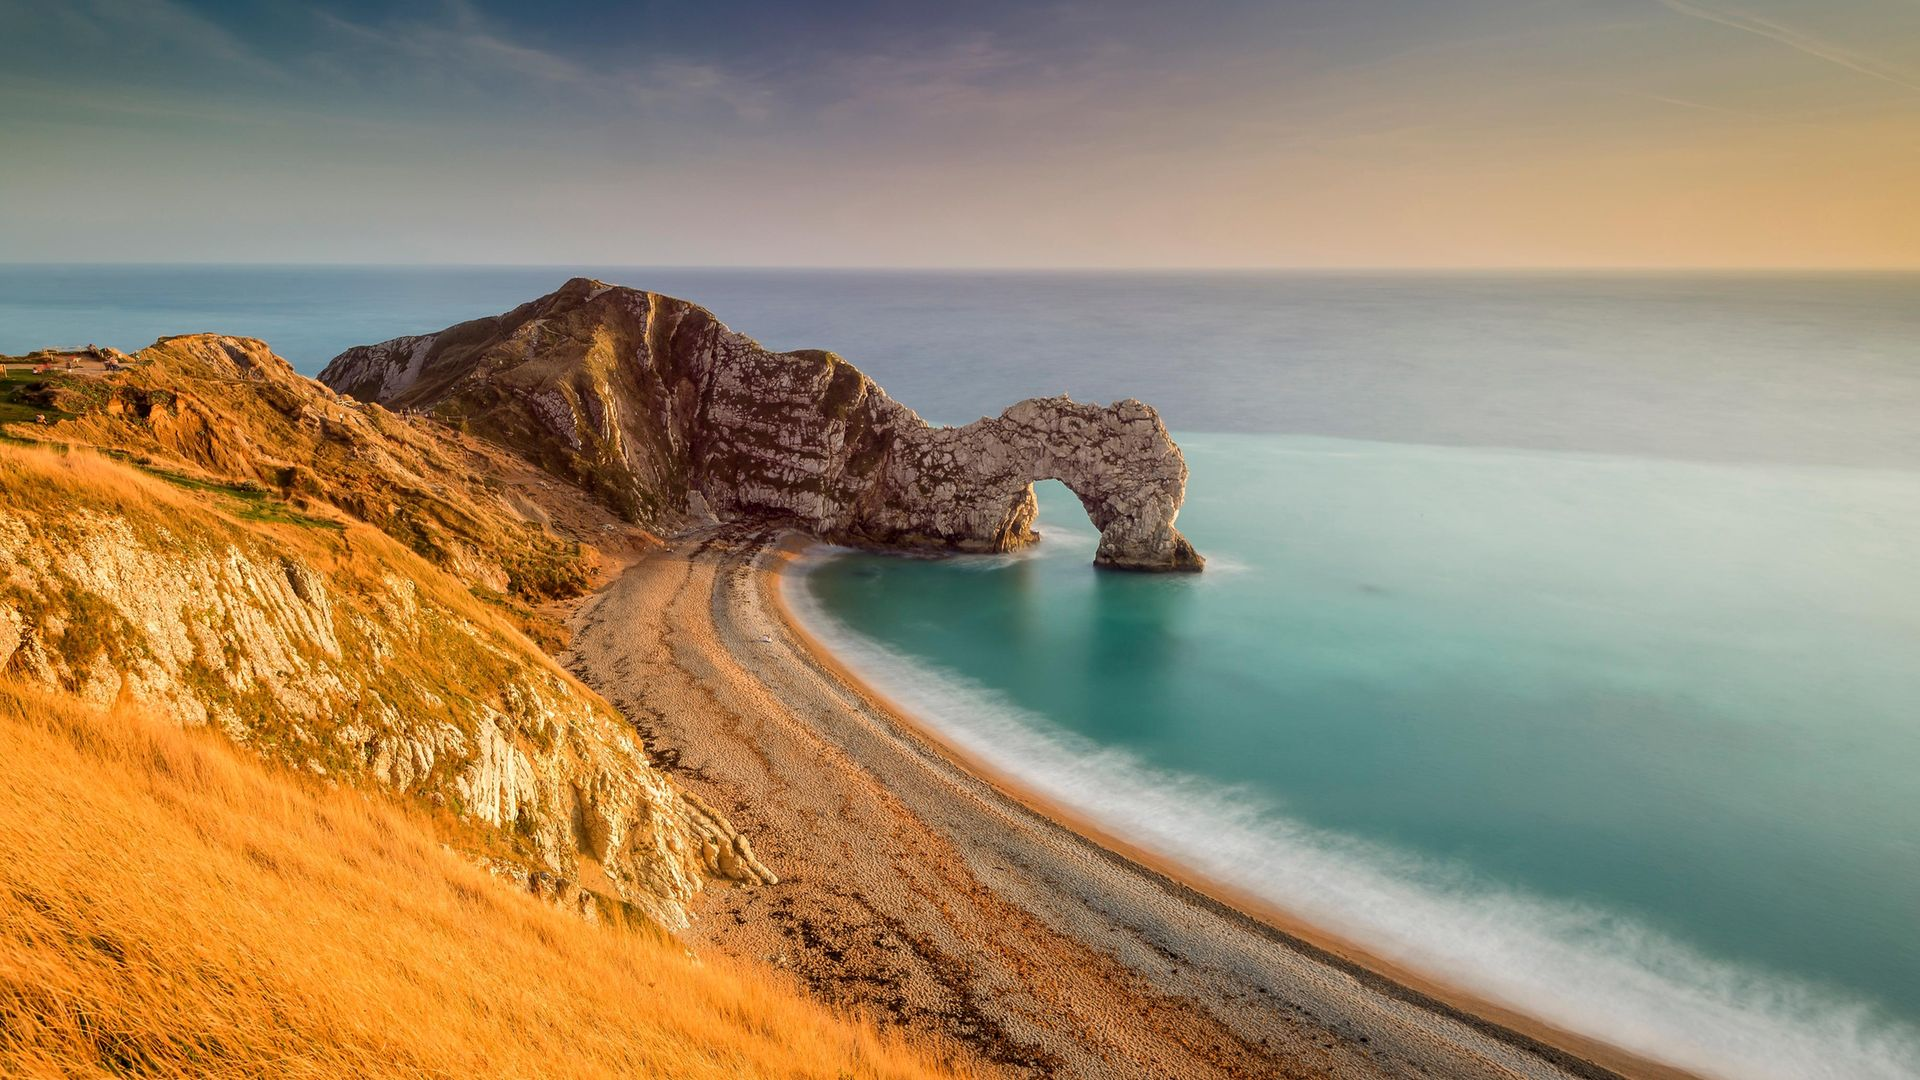 Durdle Door in Dorset - the last place John Keats stood on British soil - Credit: Universal Images Group via Getty